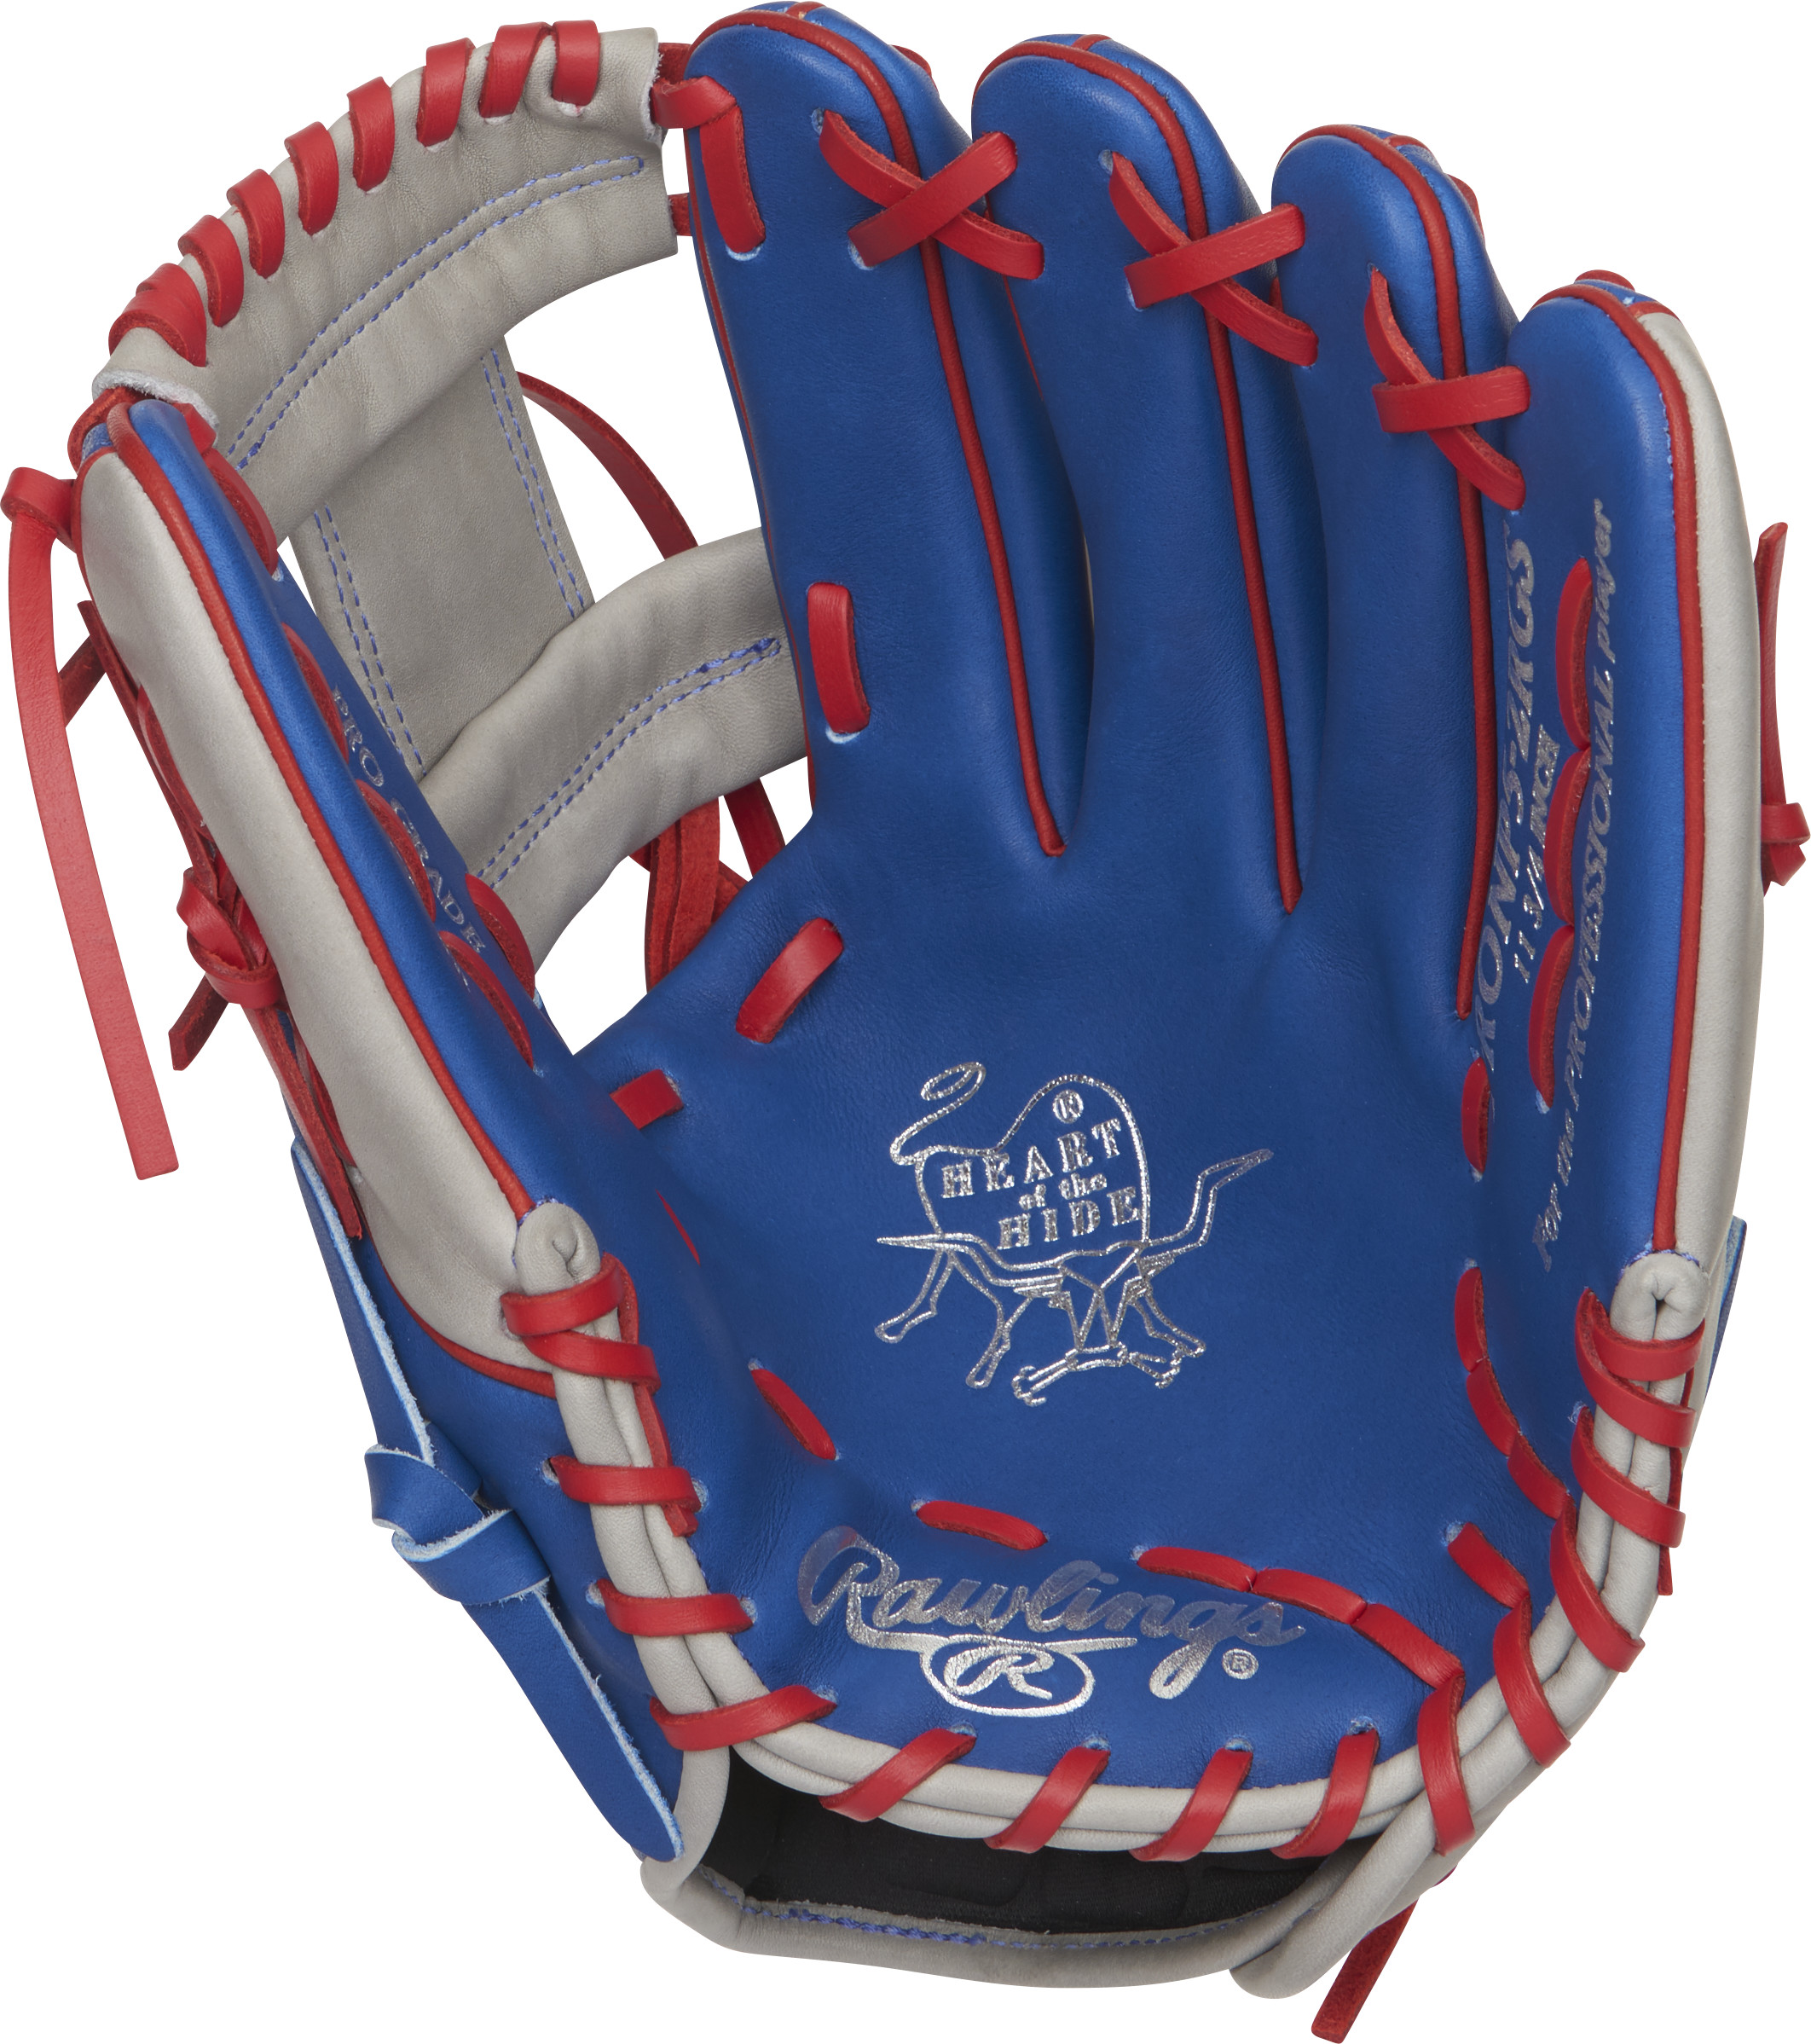 http://www.bestbatdeals.com/images/gloves/rawlings/PRONP5-2RGS-1.jpg